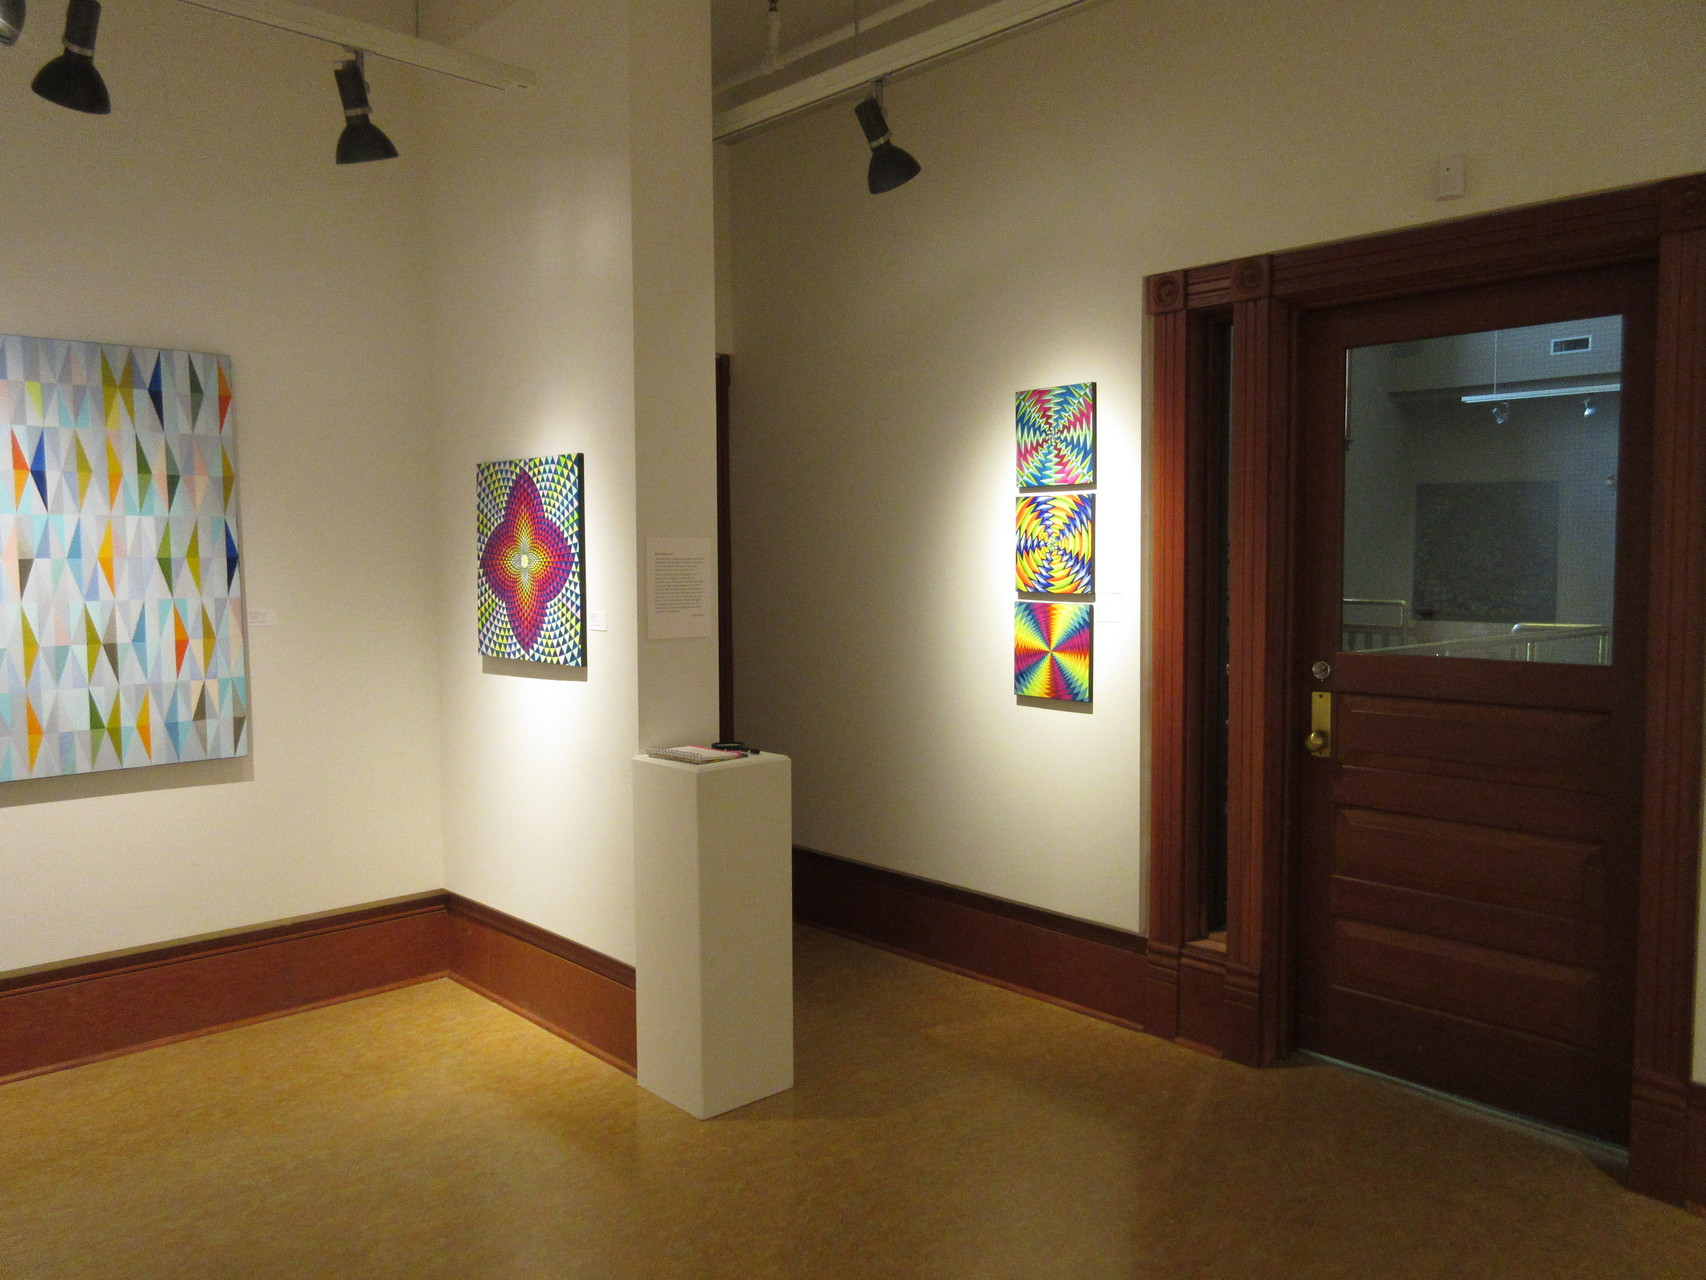 Gallery2 - 2015 show